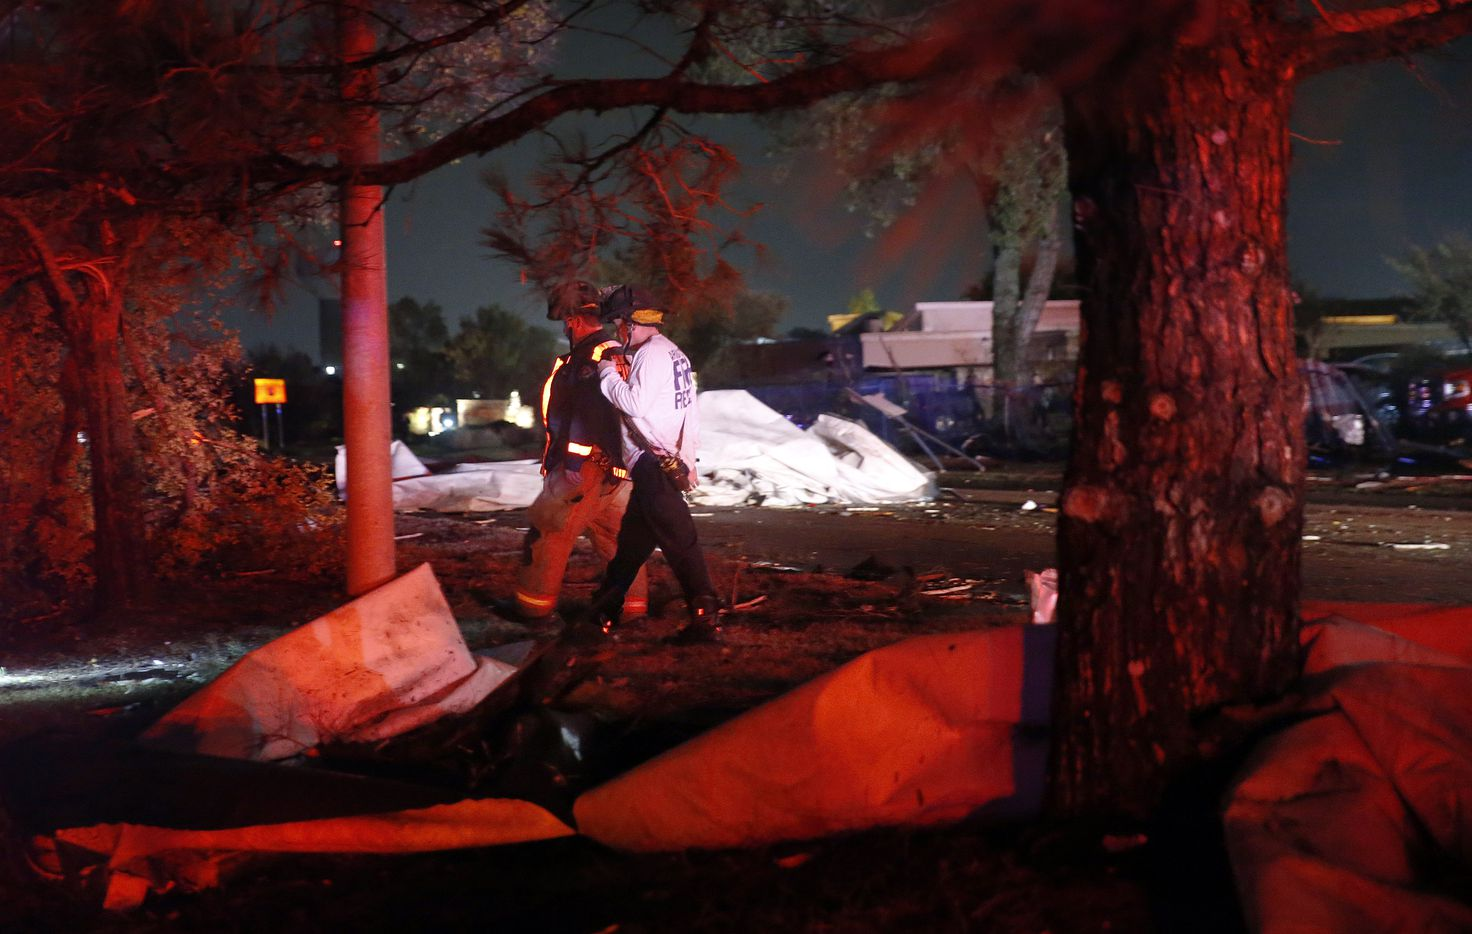 A pair of firefighters inspect the damage after the roofs of The Mirage Apartments complex were torn off and landed on Pioneer Parkway in Arlington following a tornado-warned storm, Tuesday night, November 24, 2020.